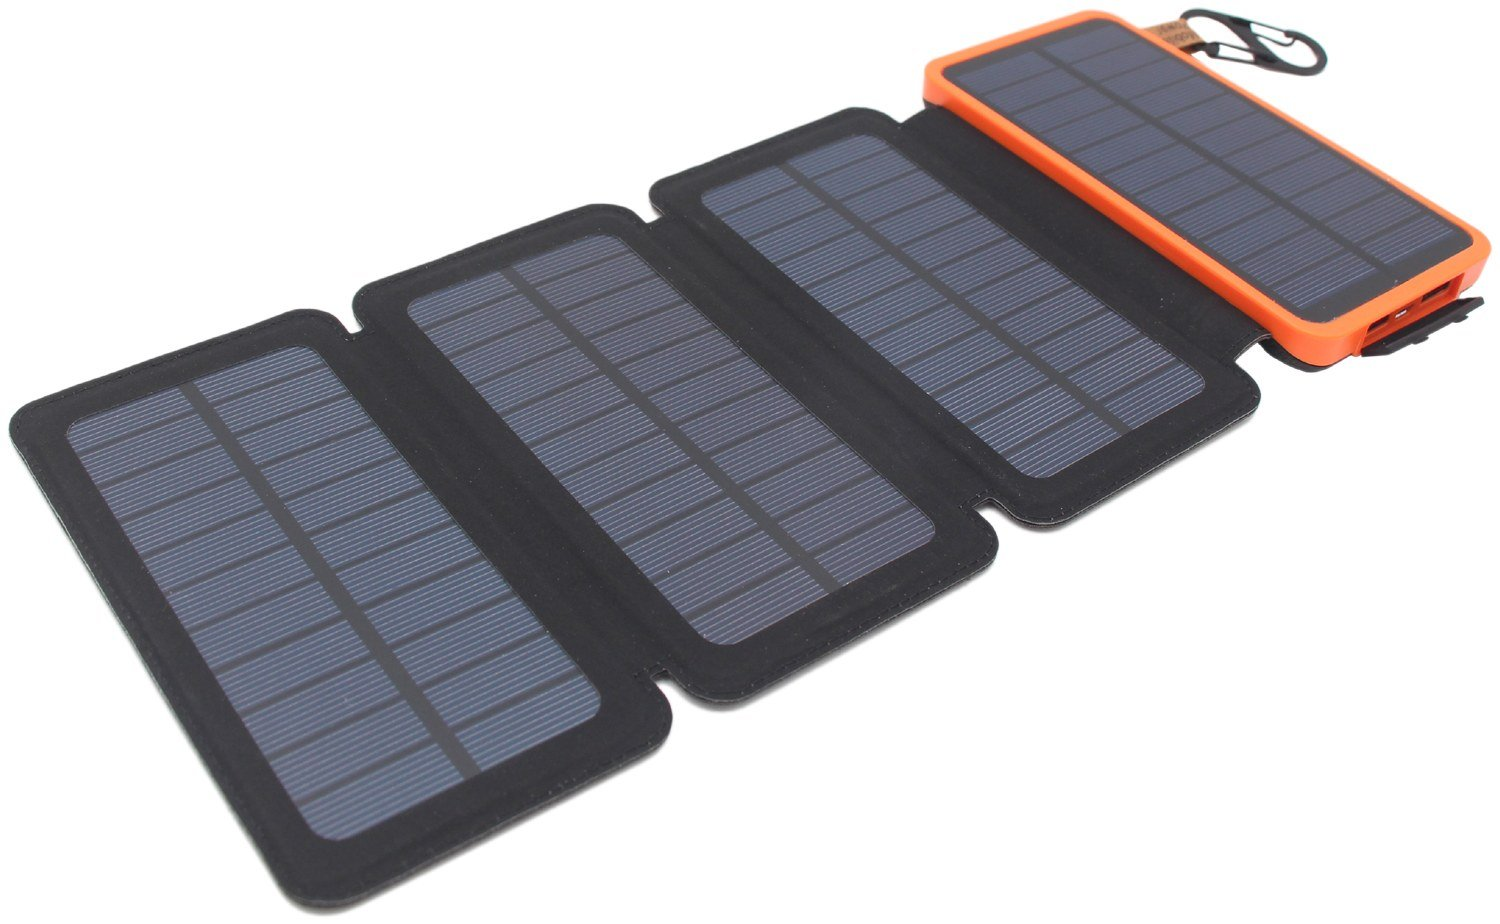 Itscool Solar Power Bank Charger 12000mAh Battery 9 LED 4 Solar Panels with 2 USB for Mobiles and All 5V Devices (4 Panels Orange)